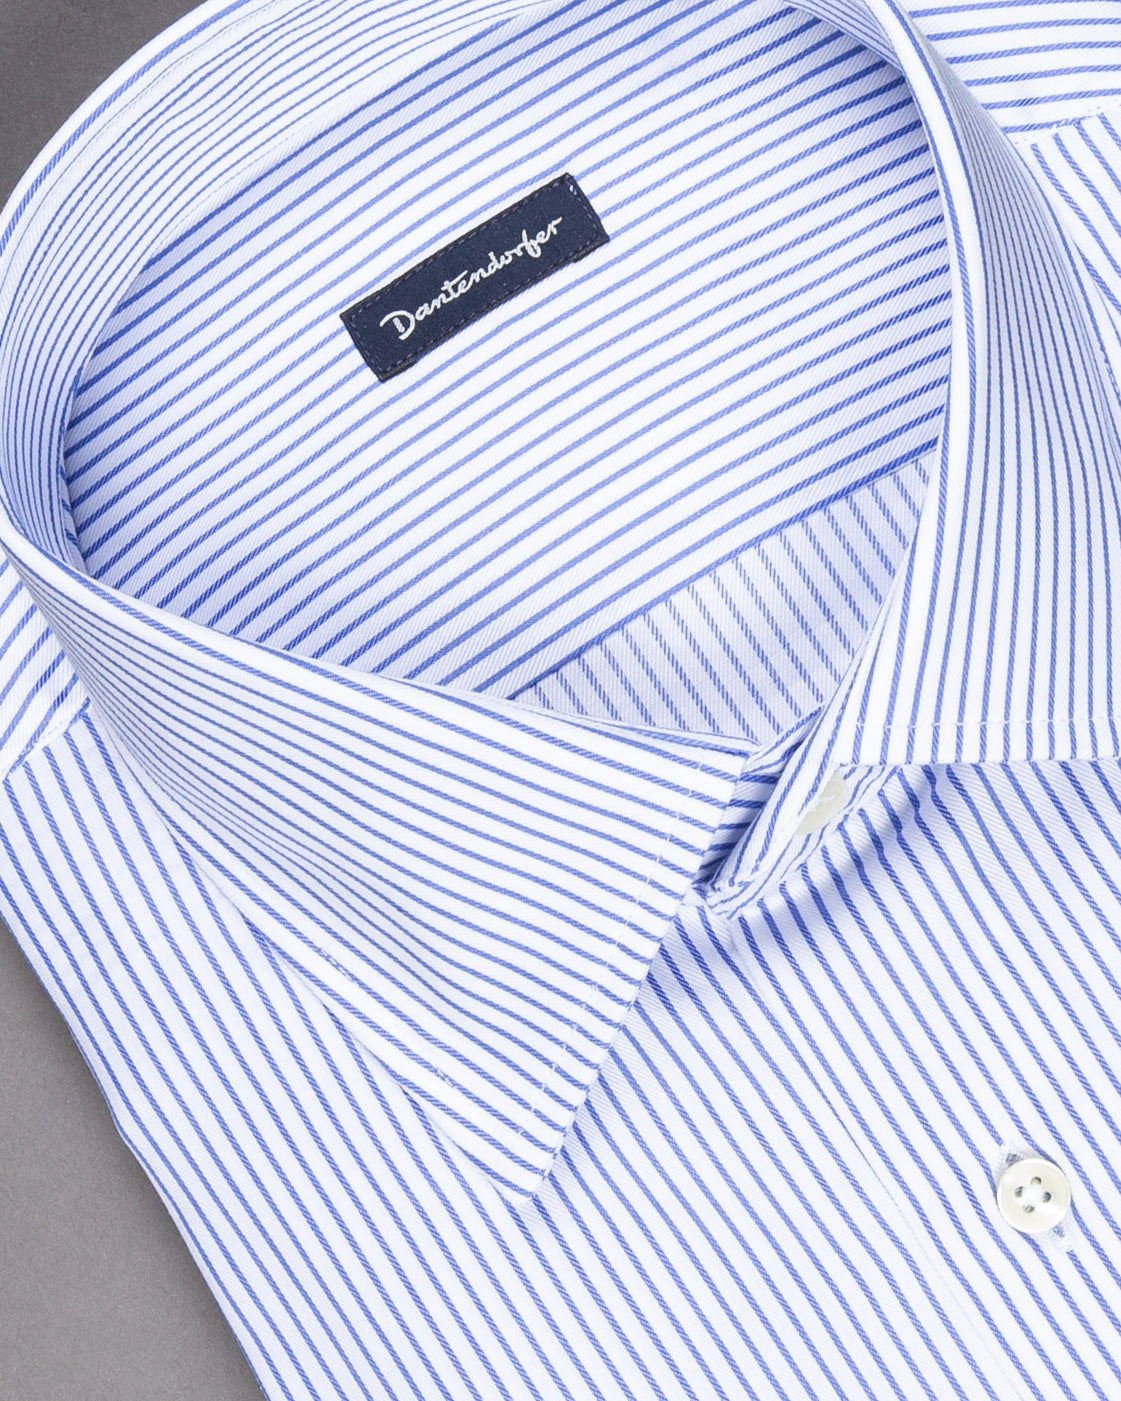 'Lucio' Striped Shirt